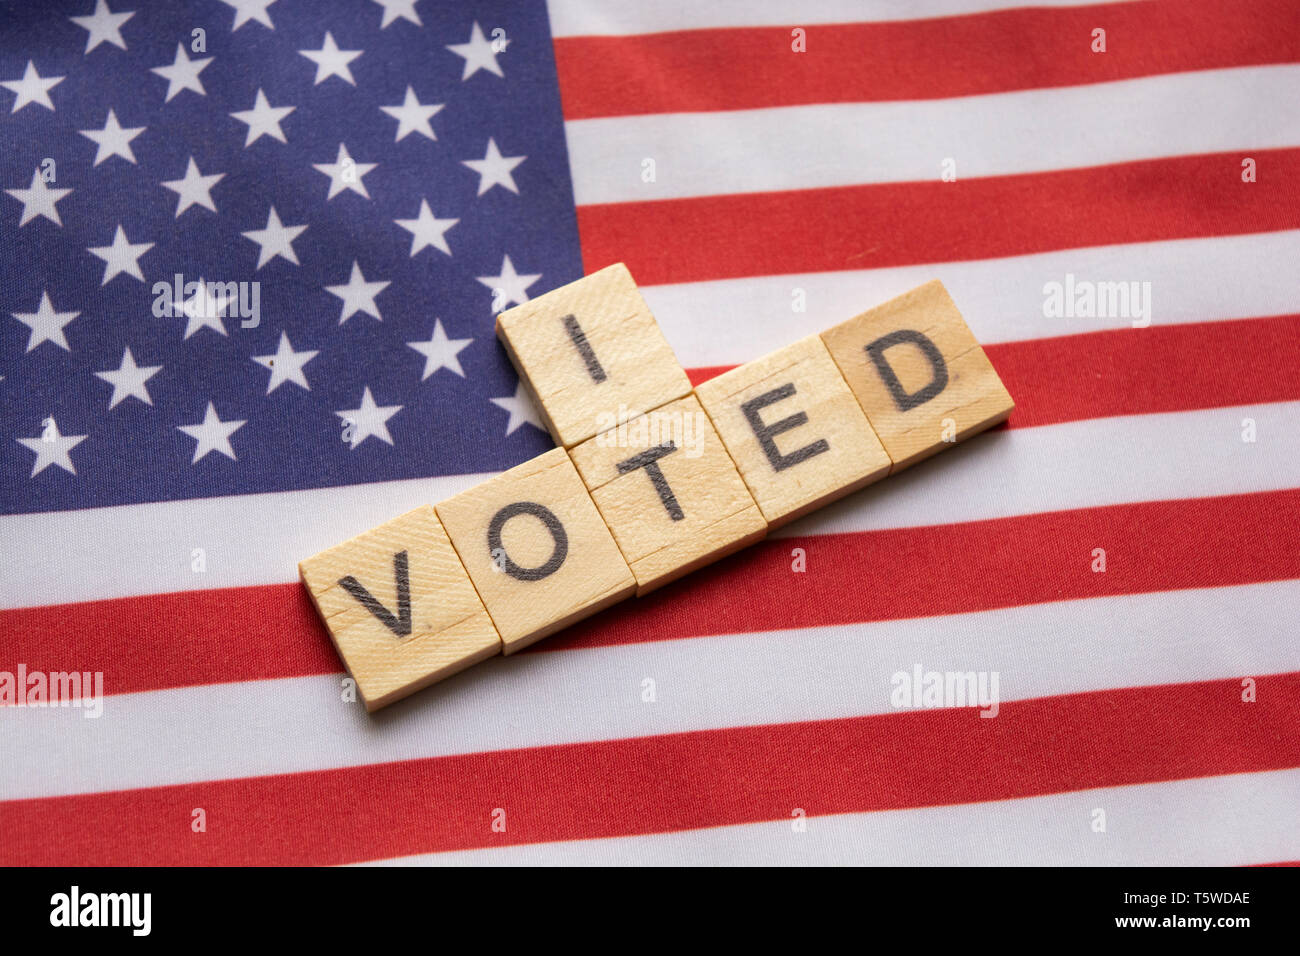 Maski, India 26, April 2019 : I voted wooden block letters,US elections on American flag. - Stock Image